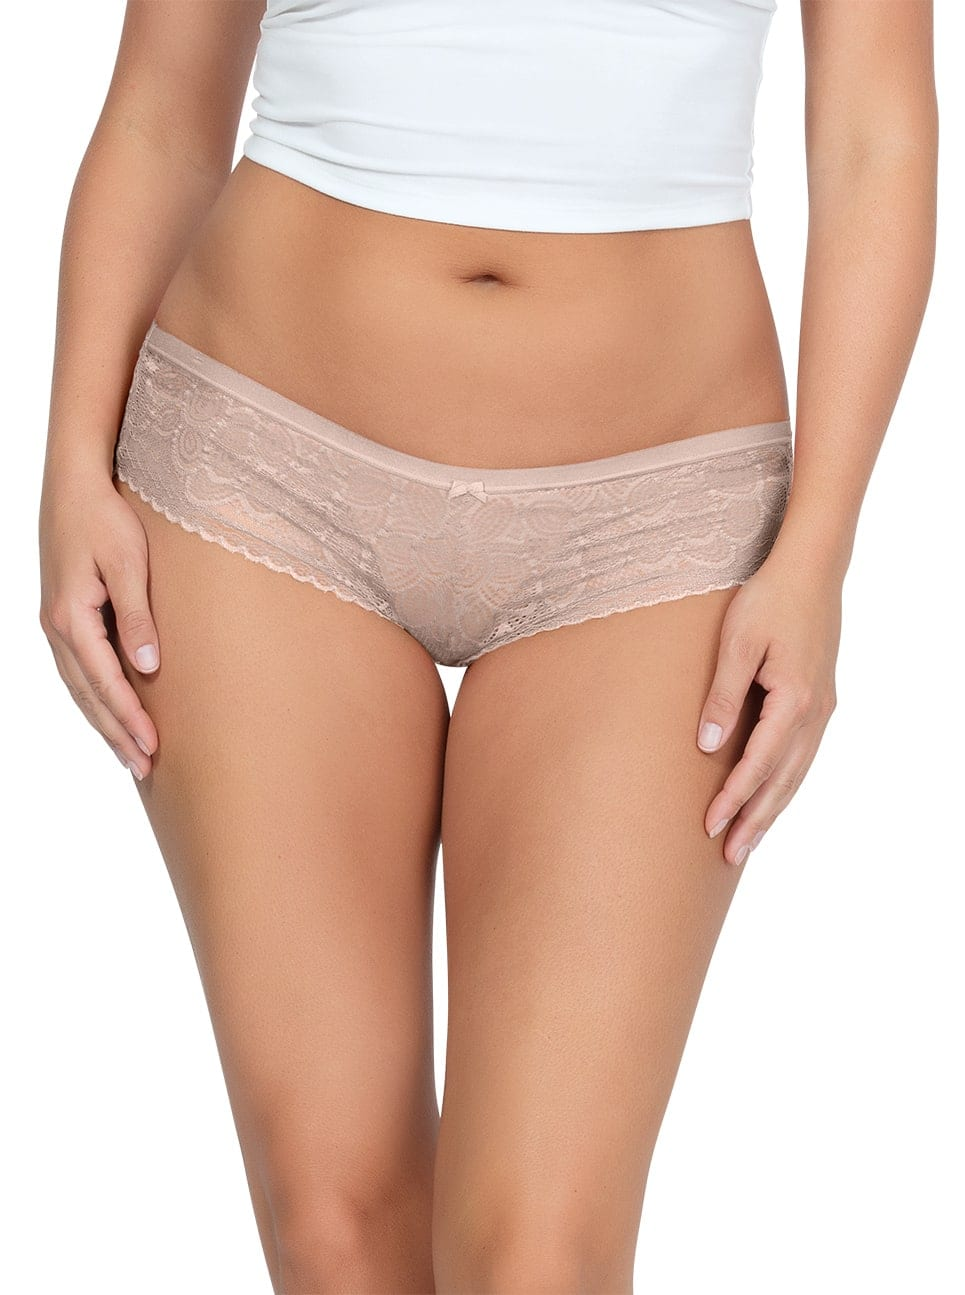 PARFAIT ParfaitPanty SoGlam HipsterPP502 Bare Front 1 - Panty So Glam Hipster - Bare - PP502